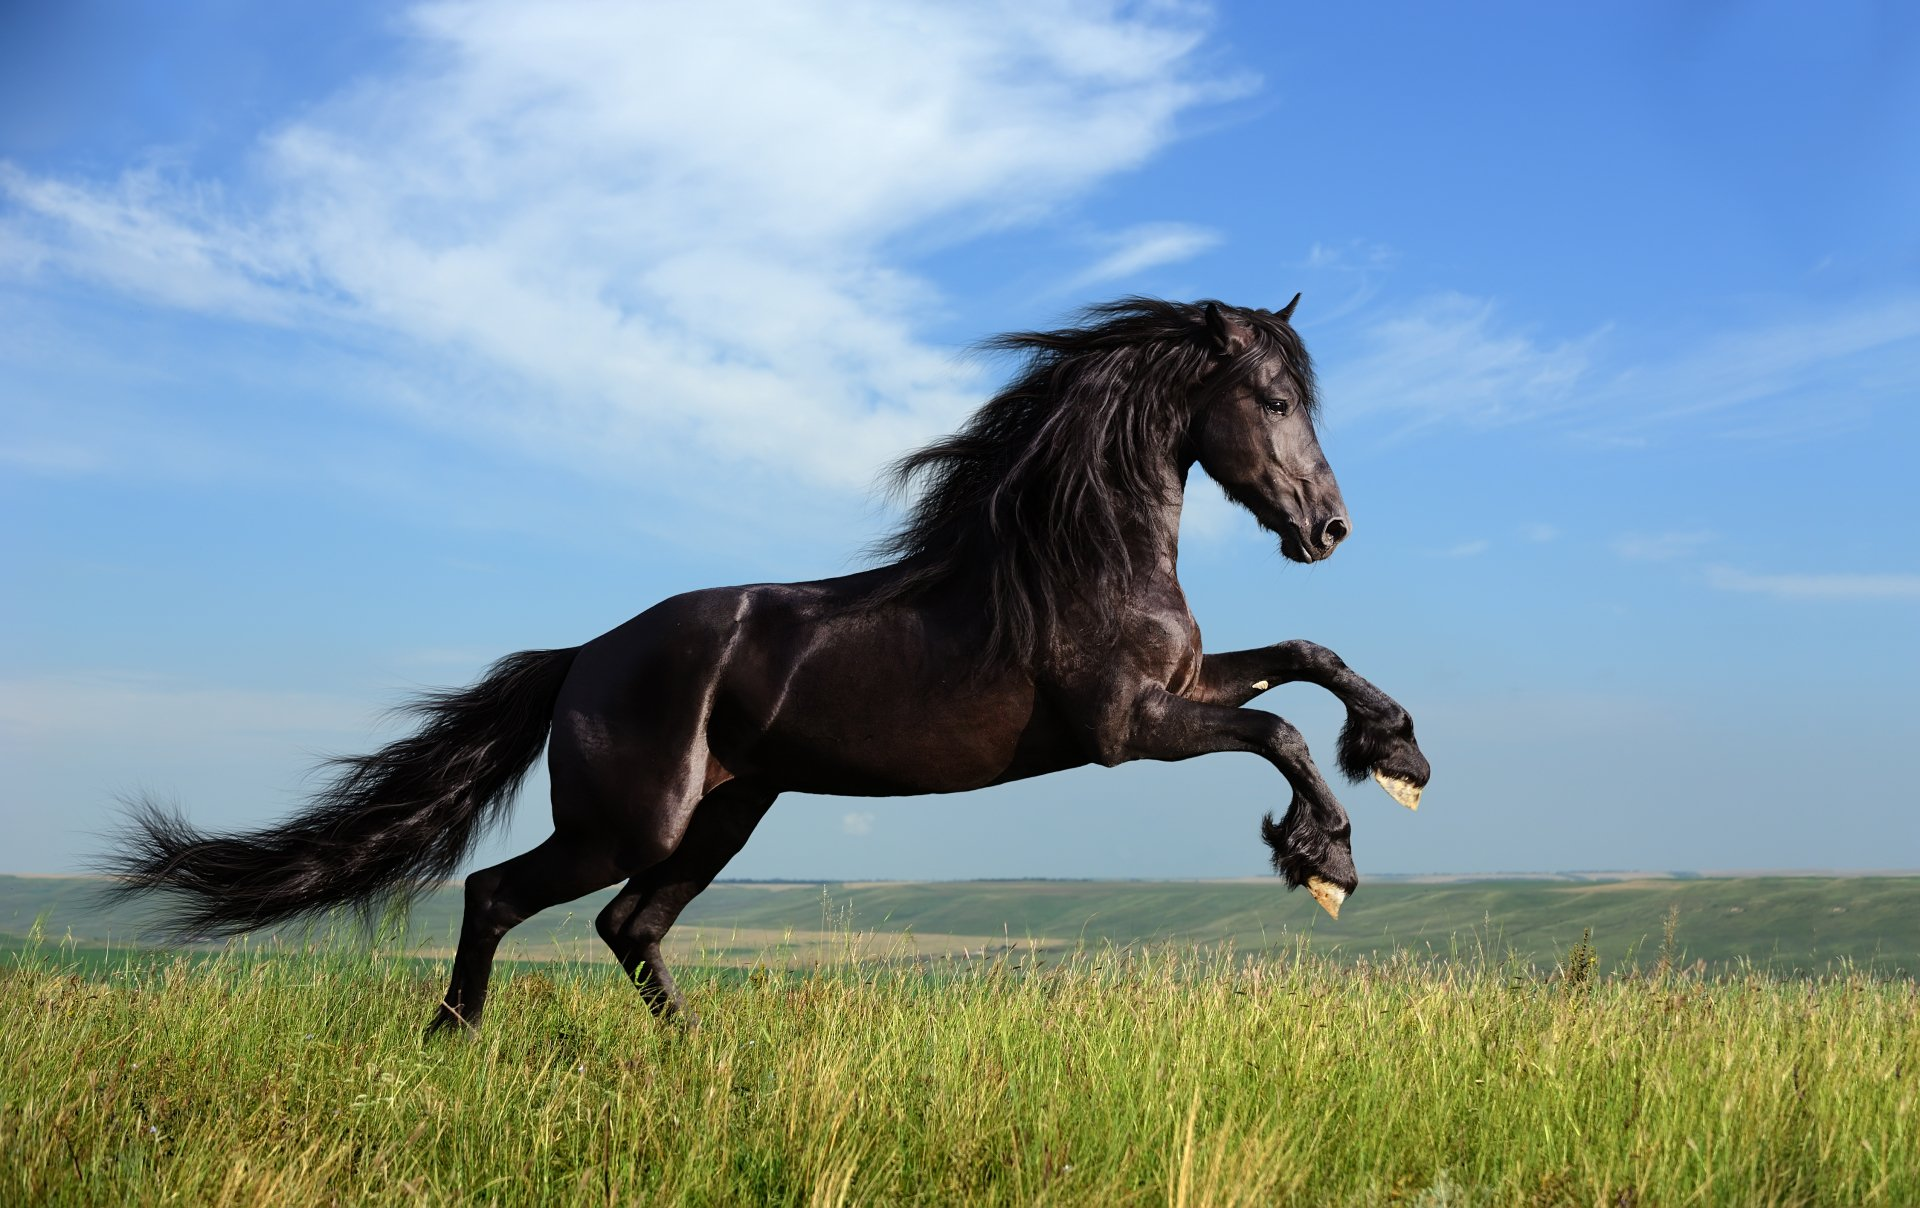 179 4k Ultra Hd Horse Wallpapers Background Images Wallpaper Abyss